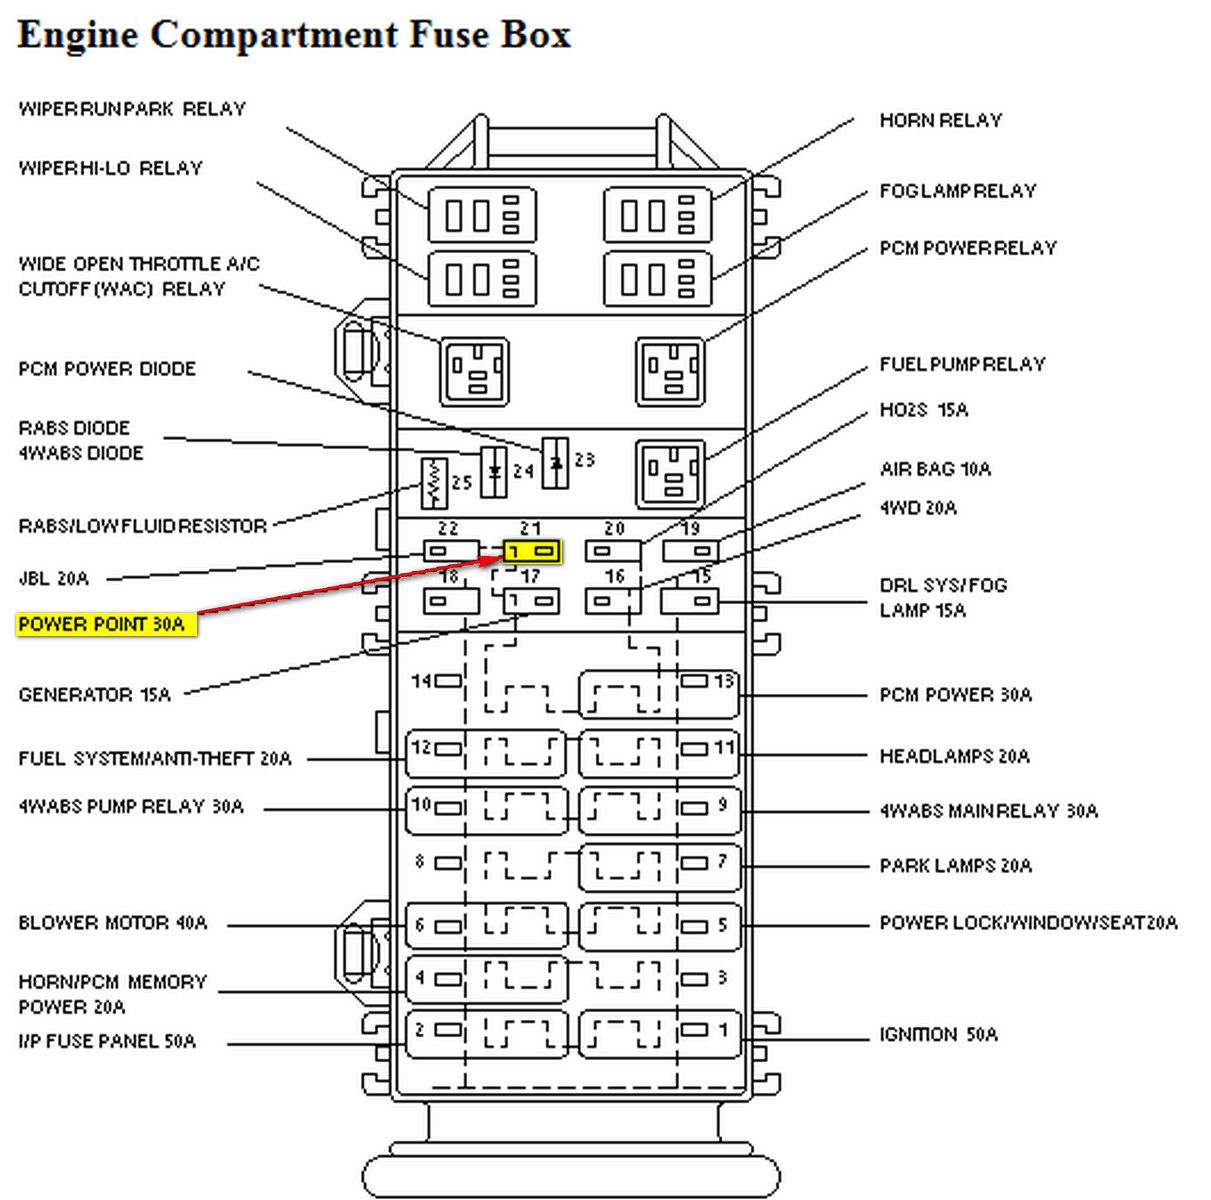 small resolution of 2002 ford ranger fuse diagram 1997 ford ranger fuse box diagram